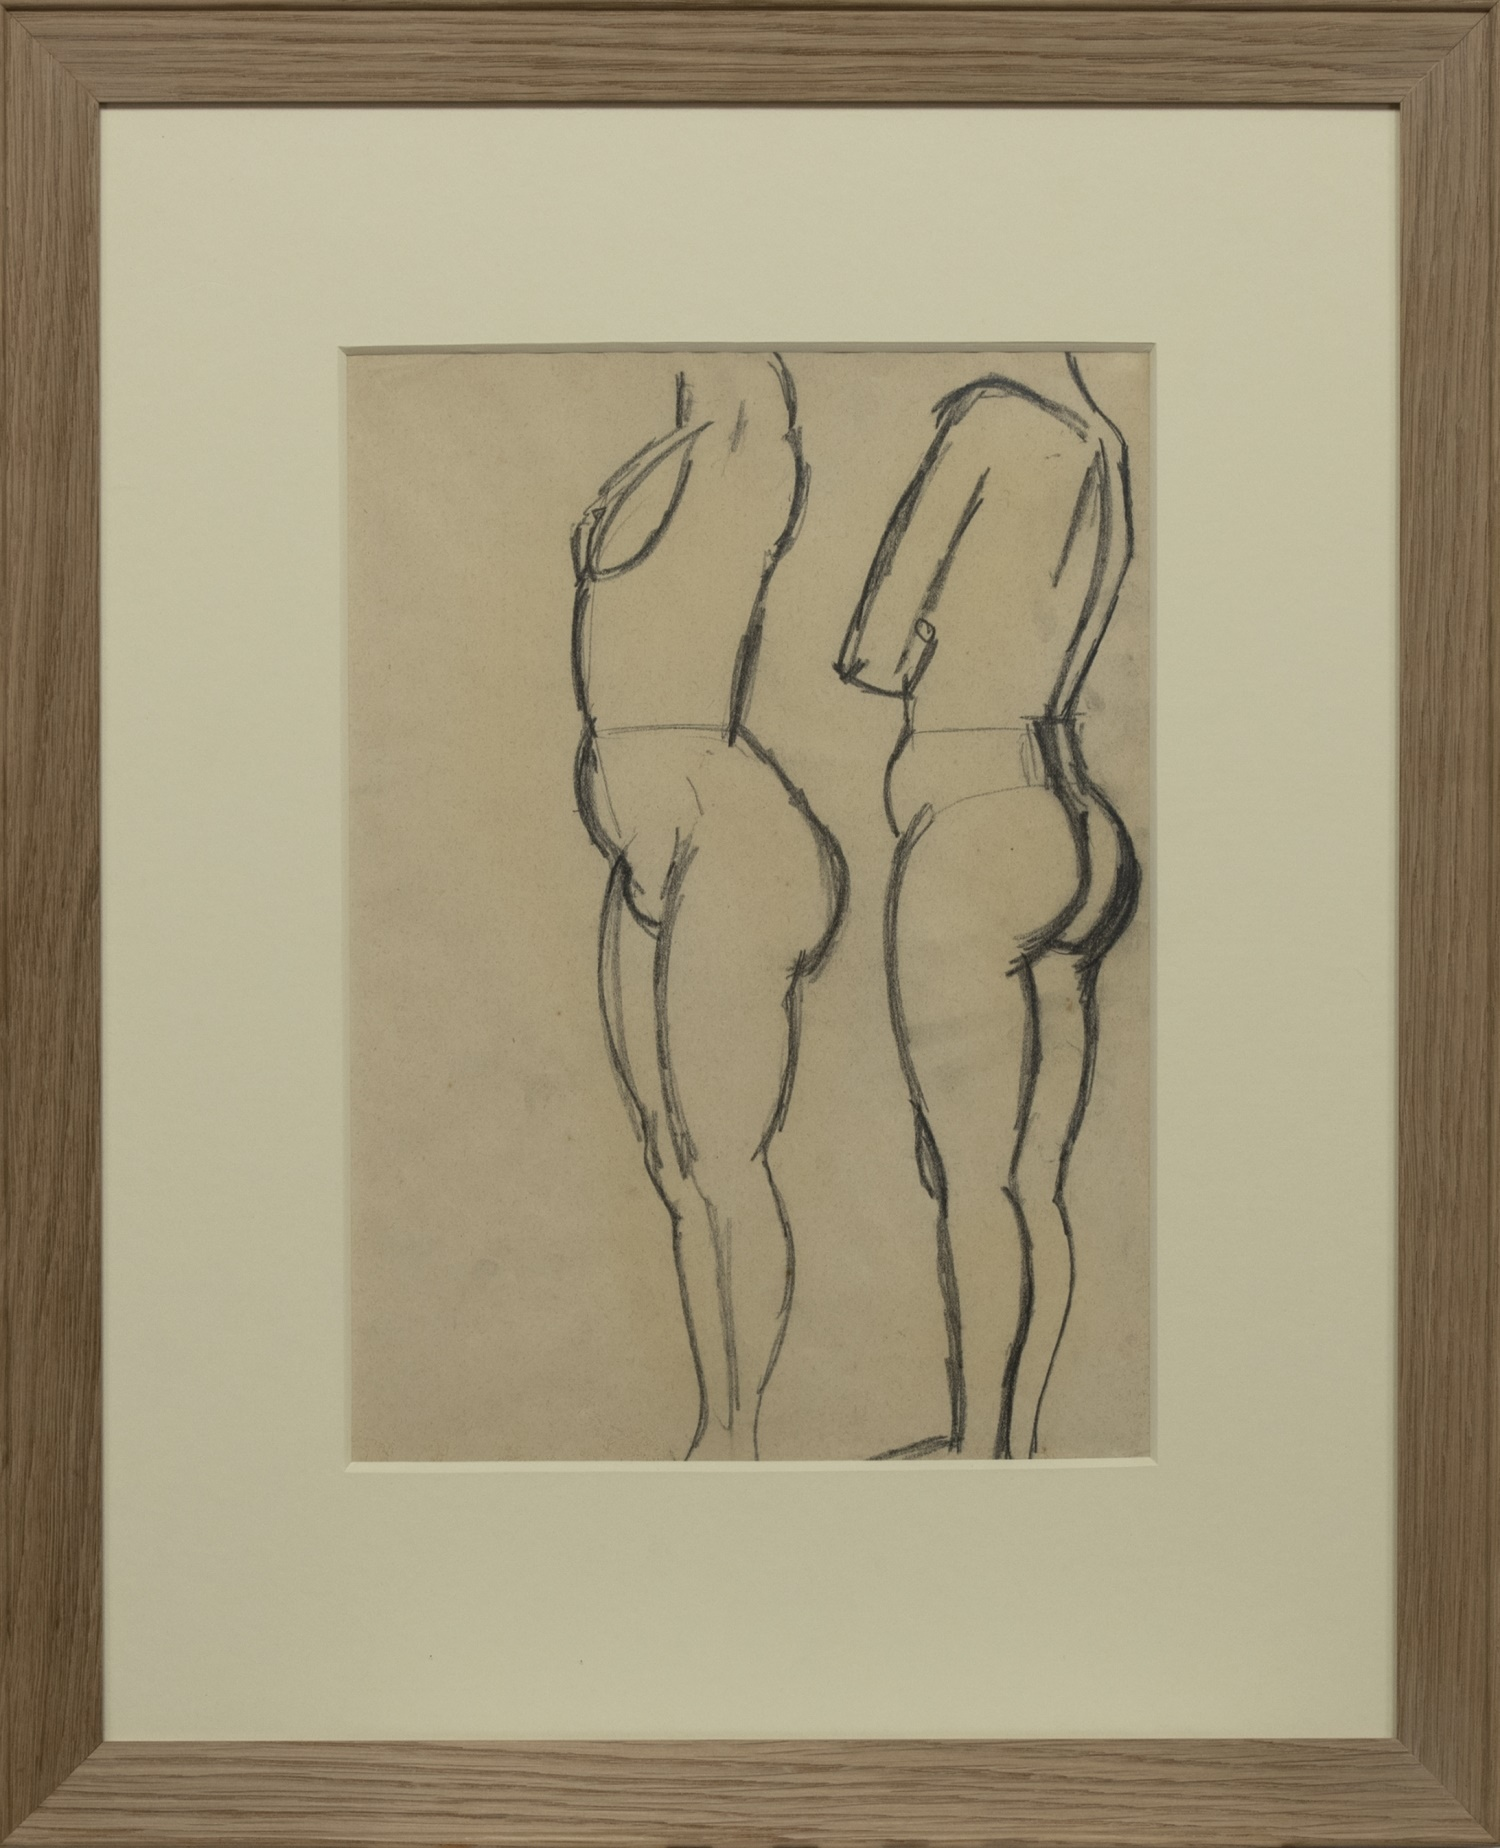 TWO STANDING NUDES, A SKETCH BY JOHN DUNCAN FERGUSSON